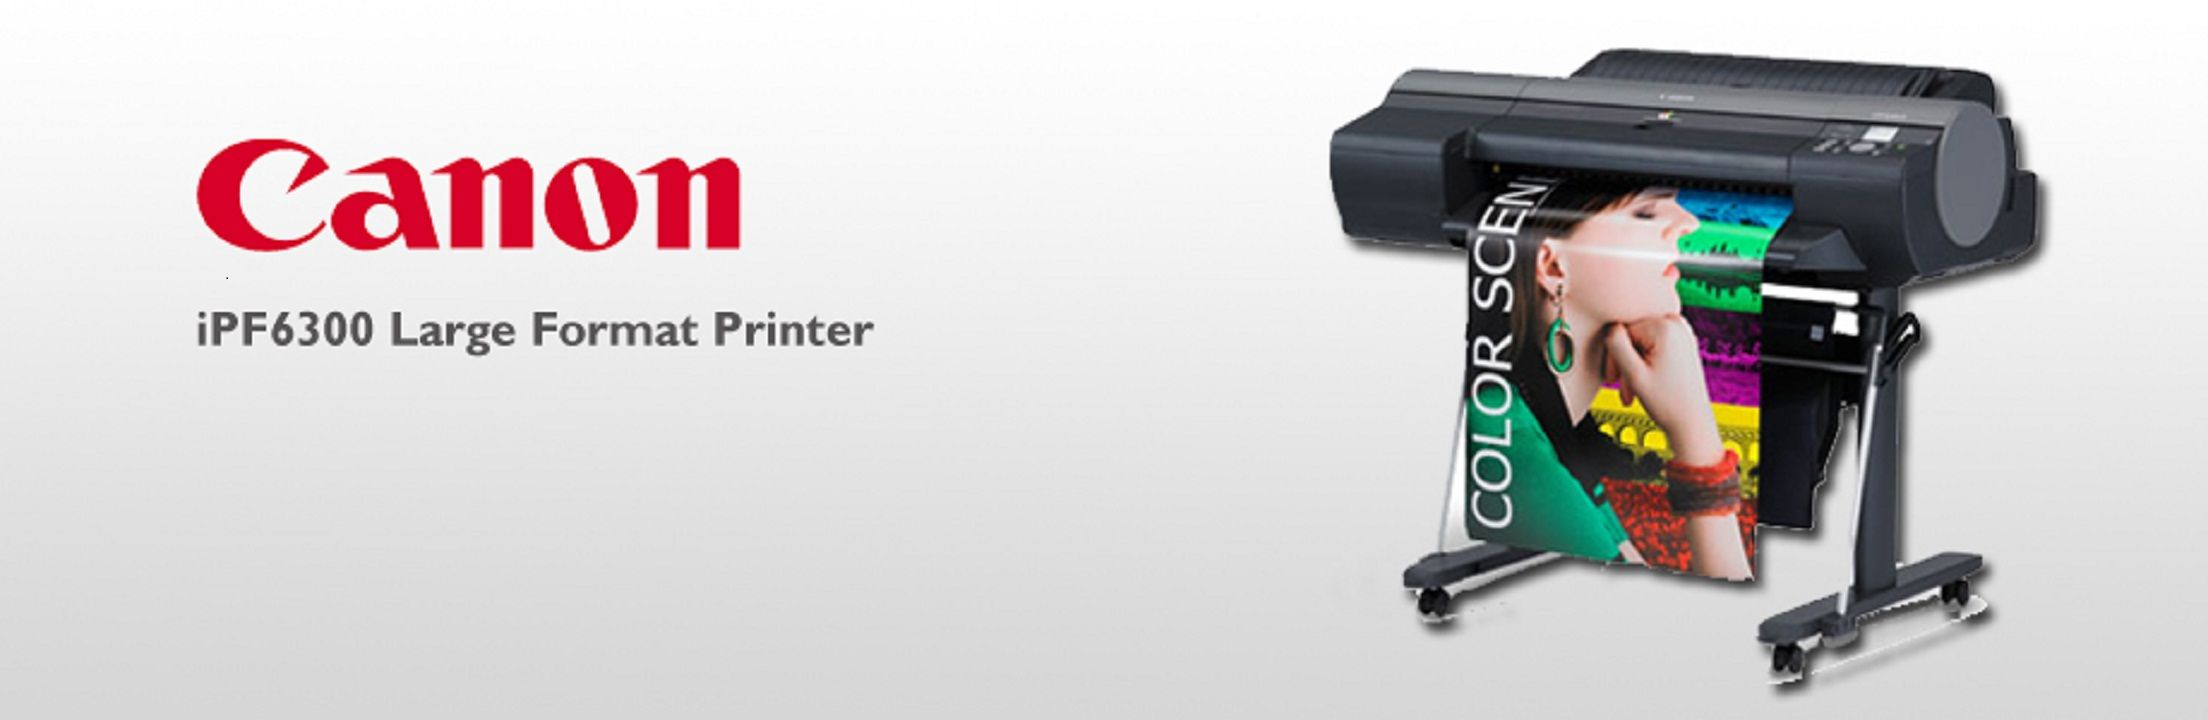 Bs Imaging Solutions Provides Sony Medical Printers Sony Video Cameras Sony Video Recorders Sony Lcd Monitors So Thermal Printer Sony Lcd Sony Video Camera